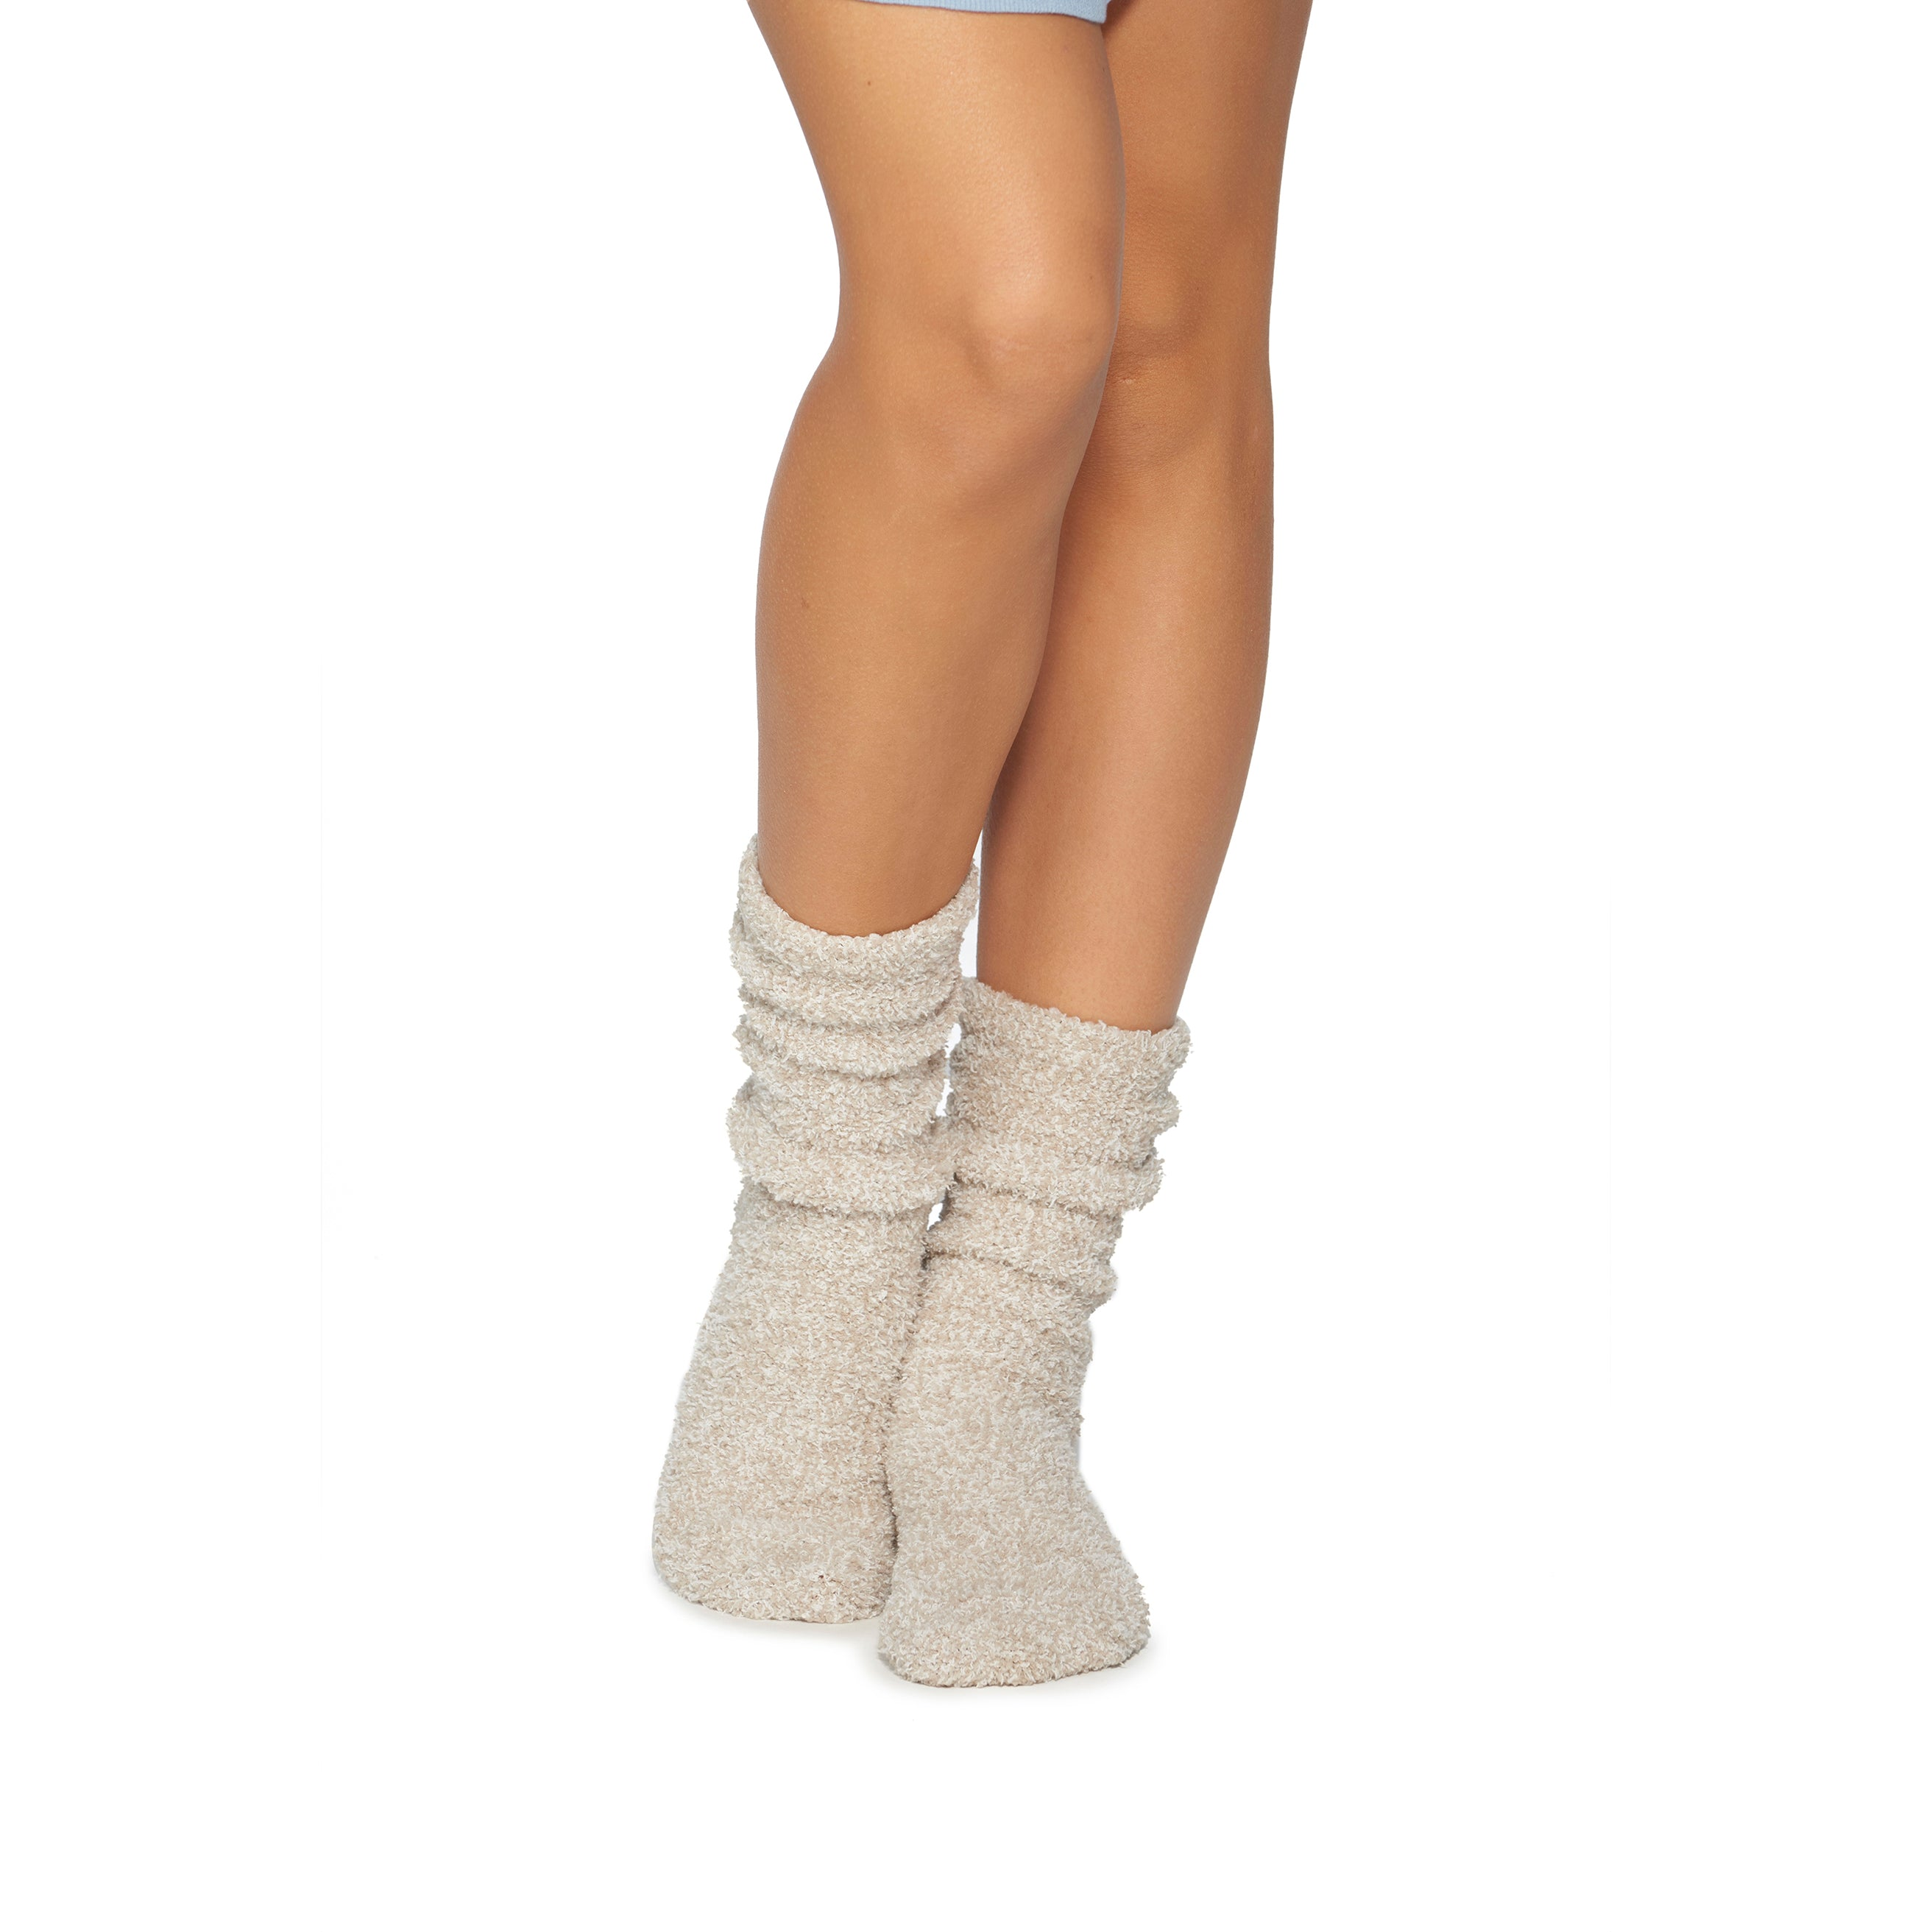 Cozychic Women's Heathered Socks